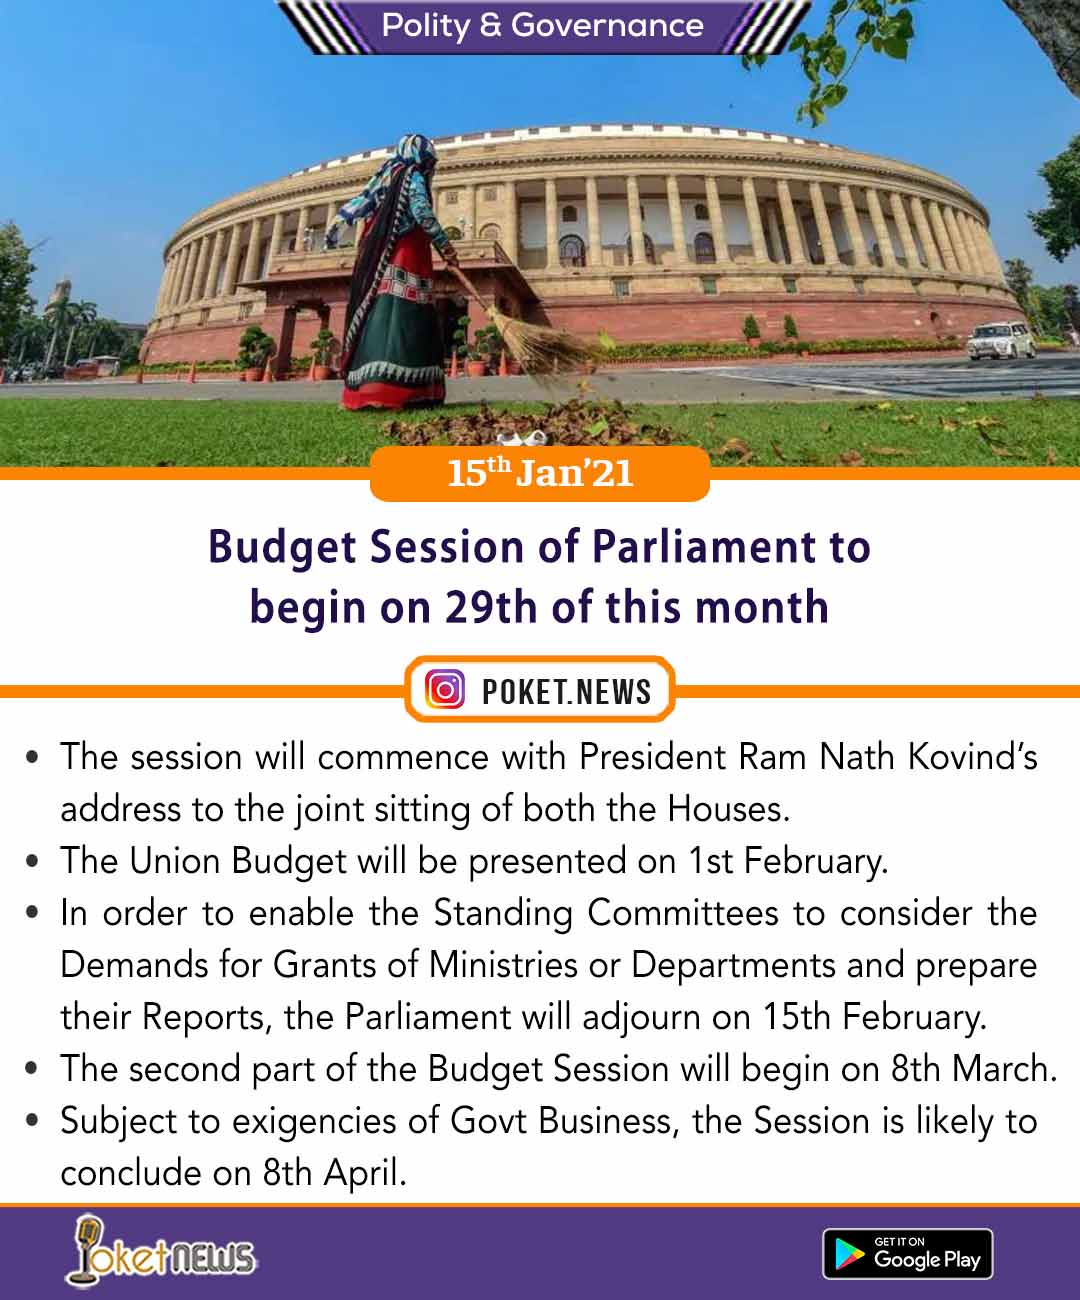 Budget Session of Parliament to begin on 29th of this month